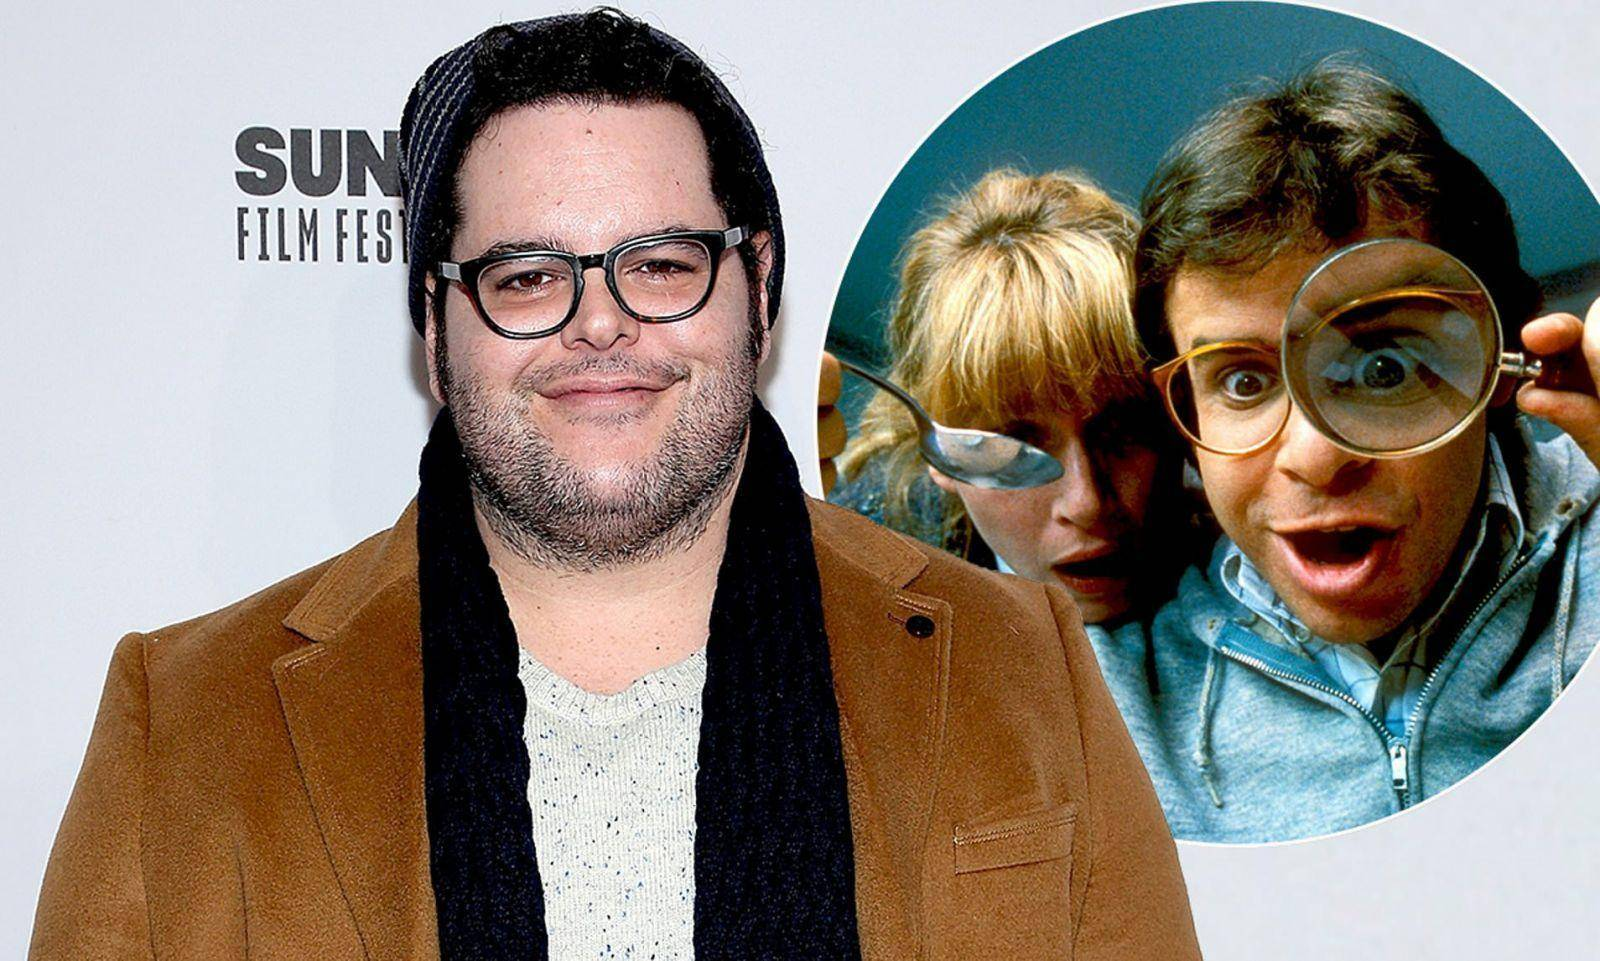 Josh Gad, Honey I Shrunk the Kids